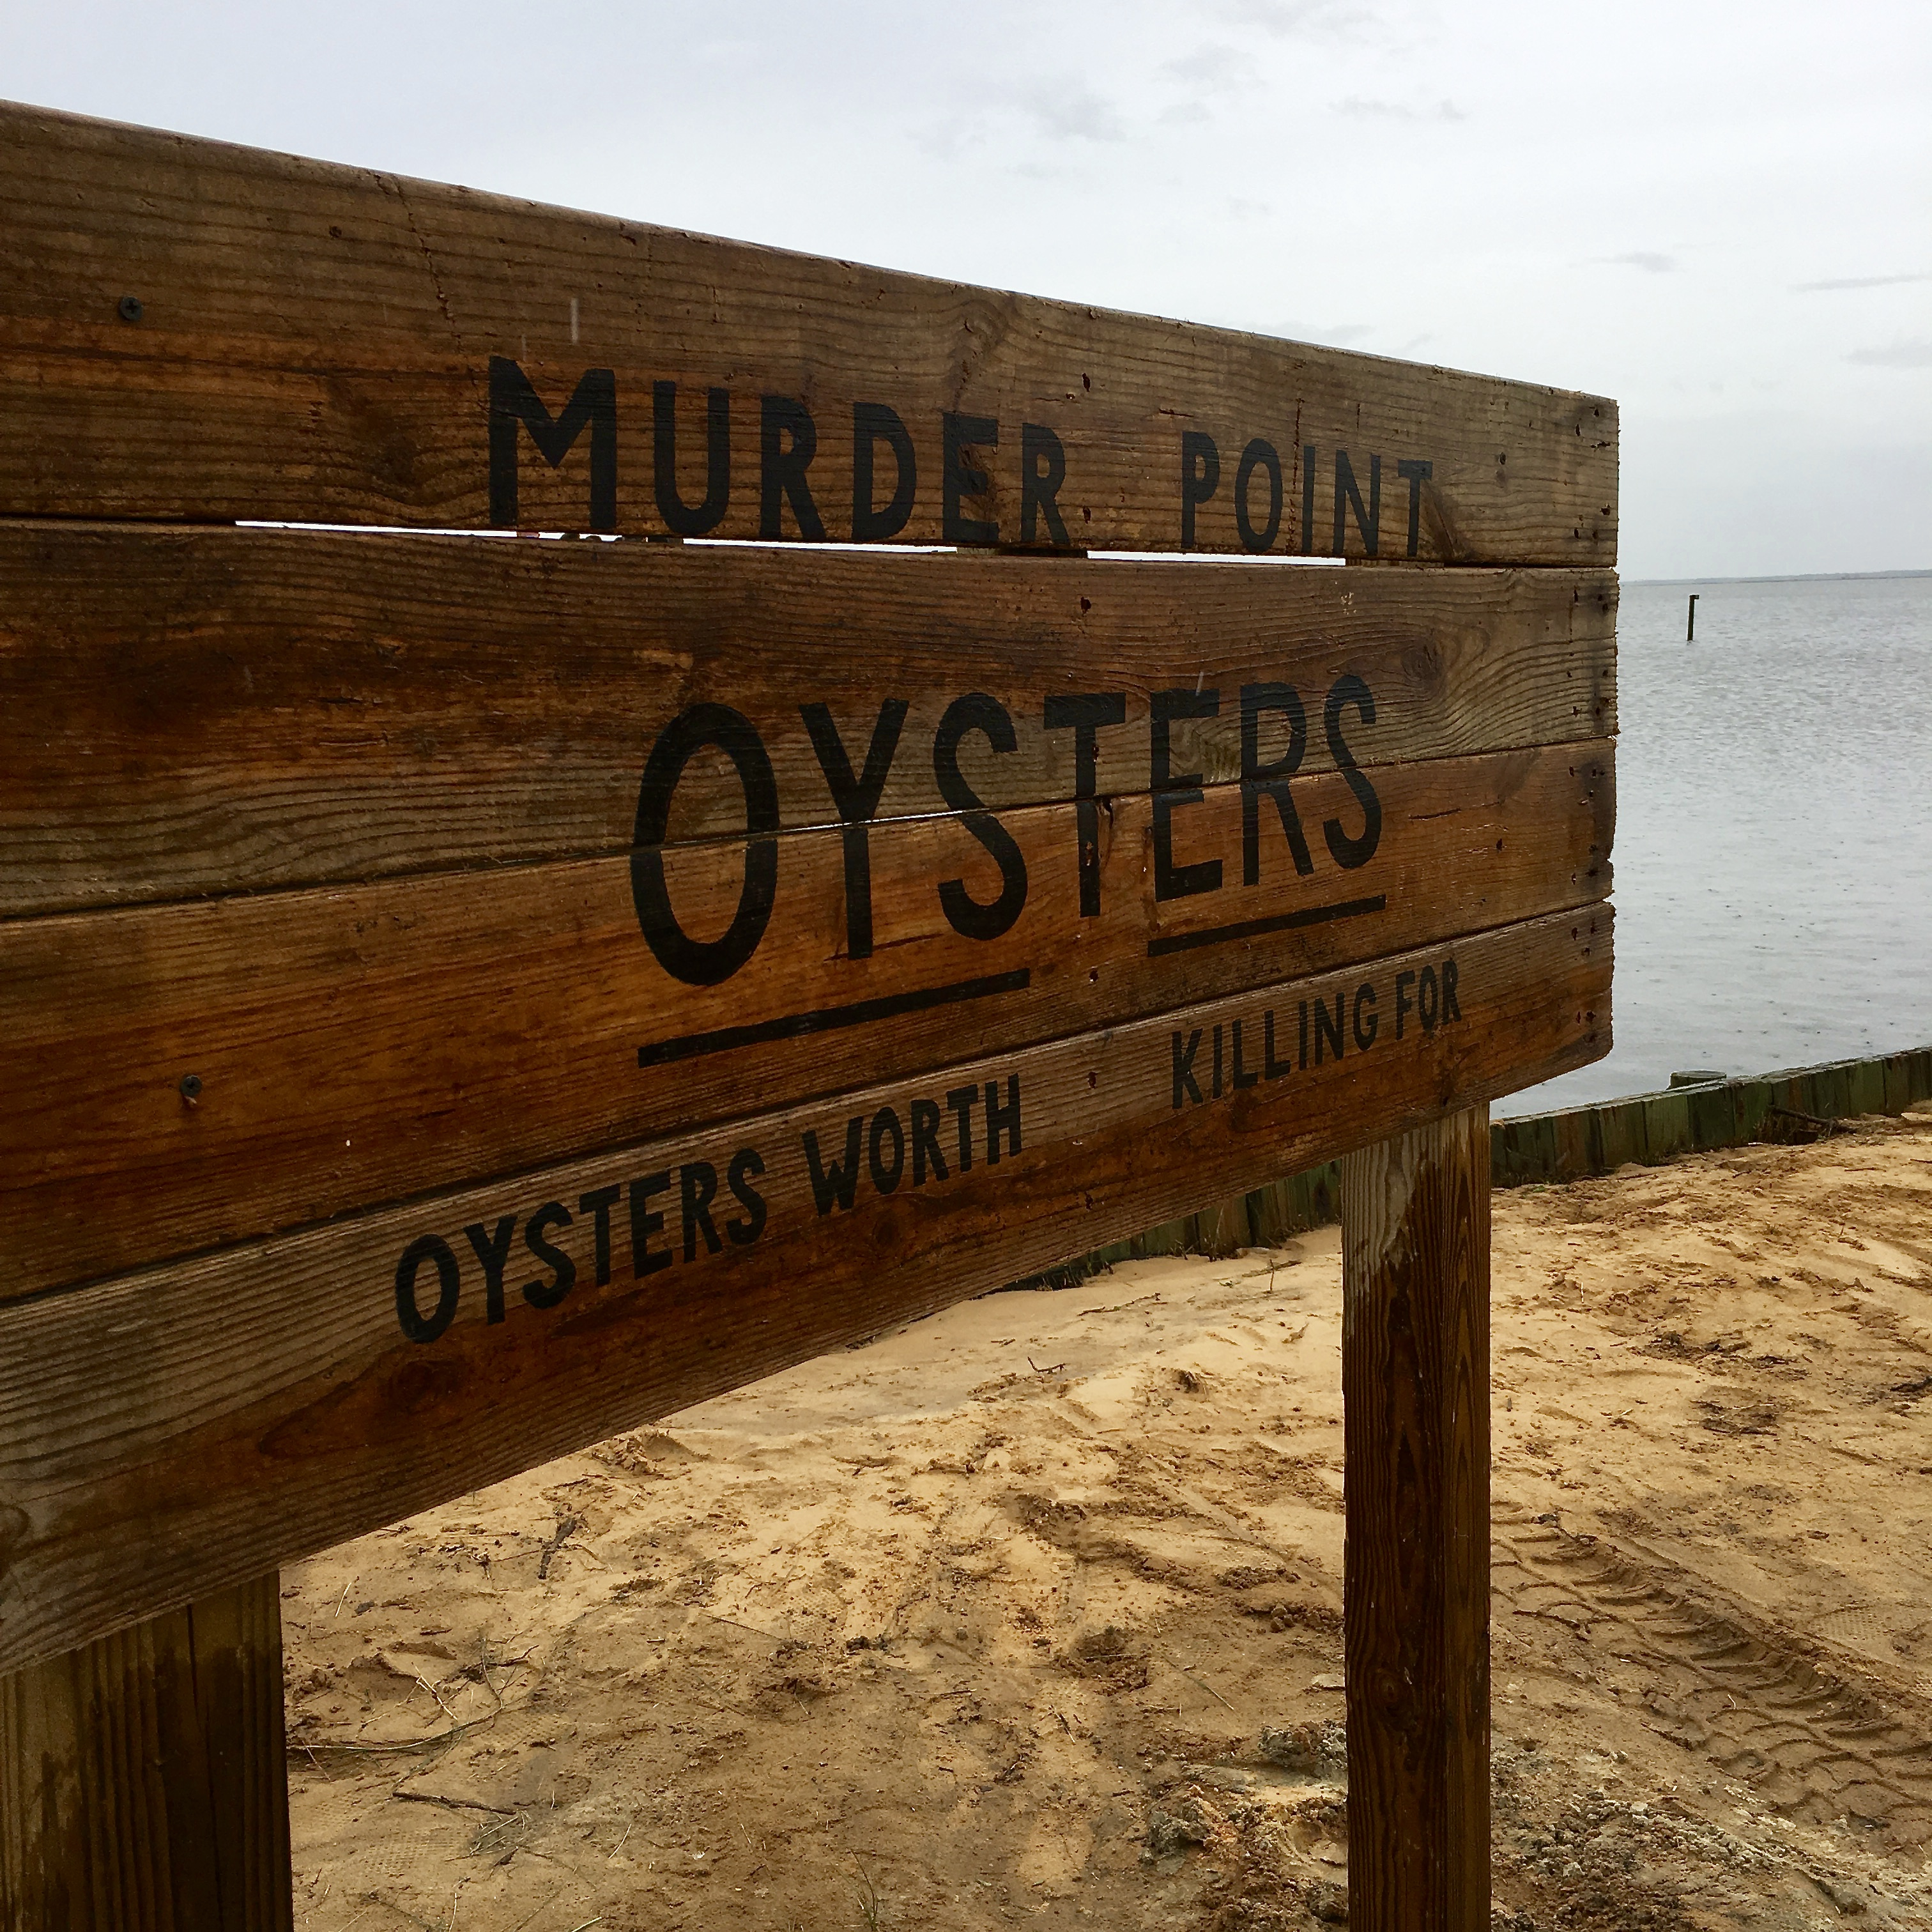 Murder Point Oyster sign